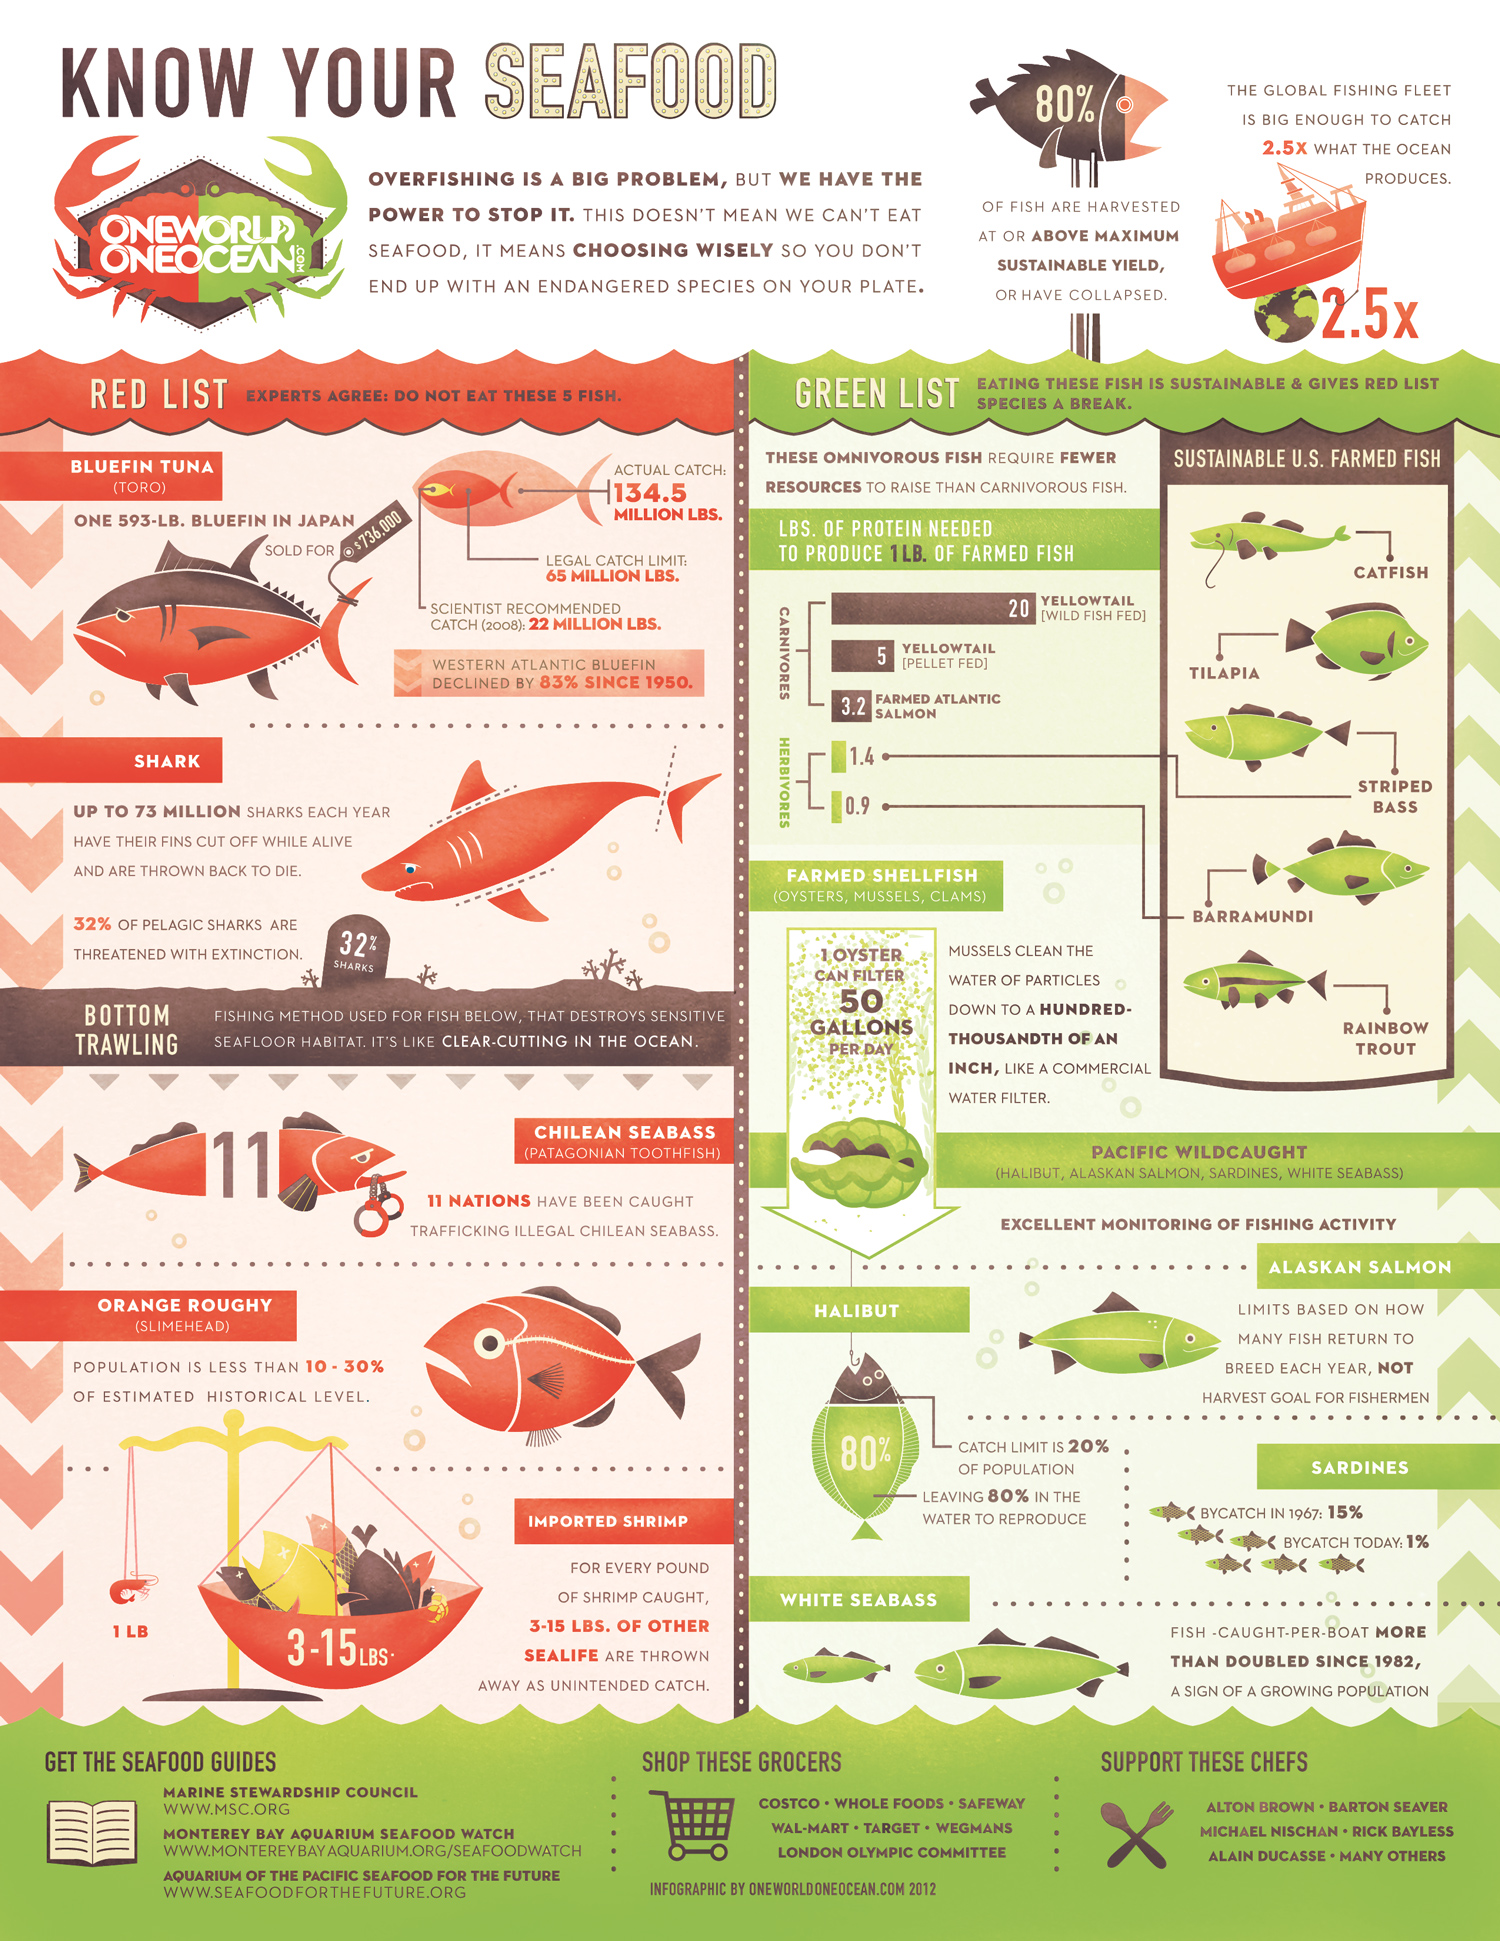 OWOO_KnowYourSeafood